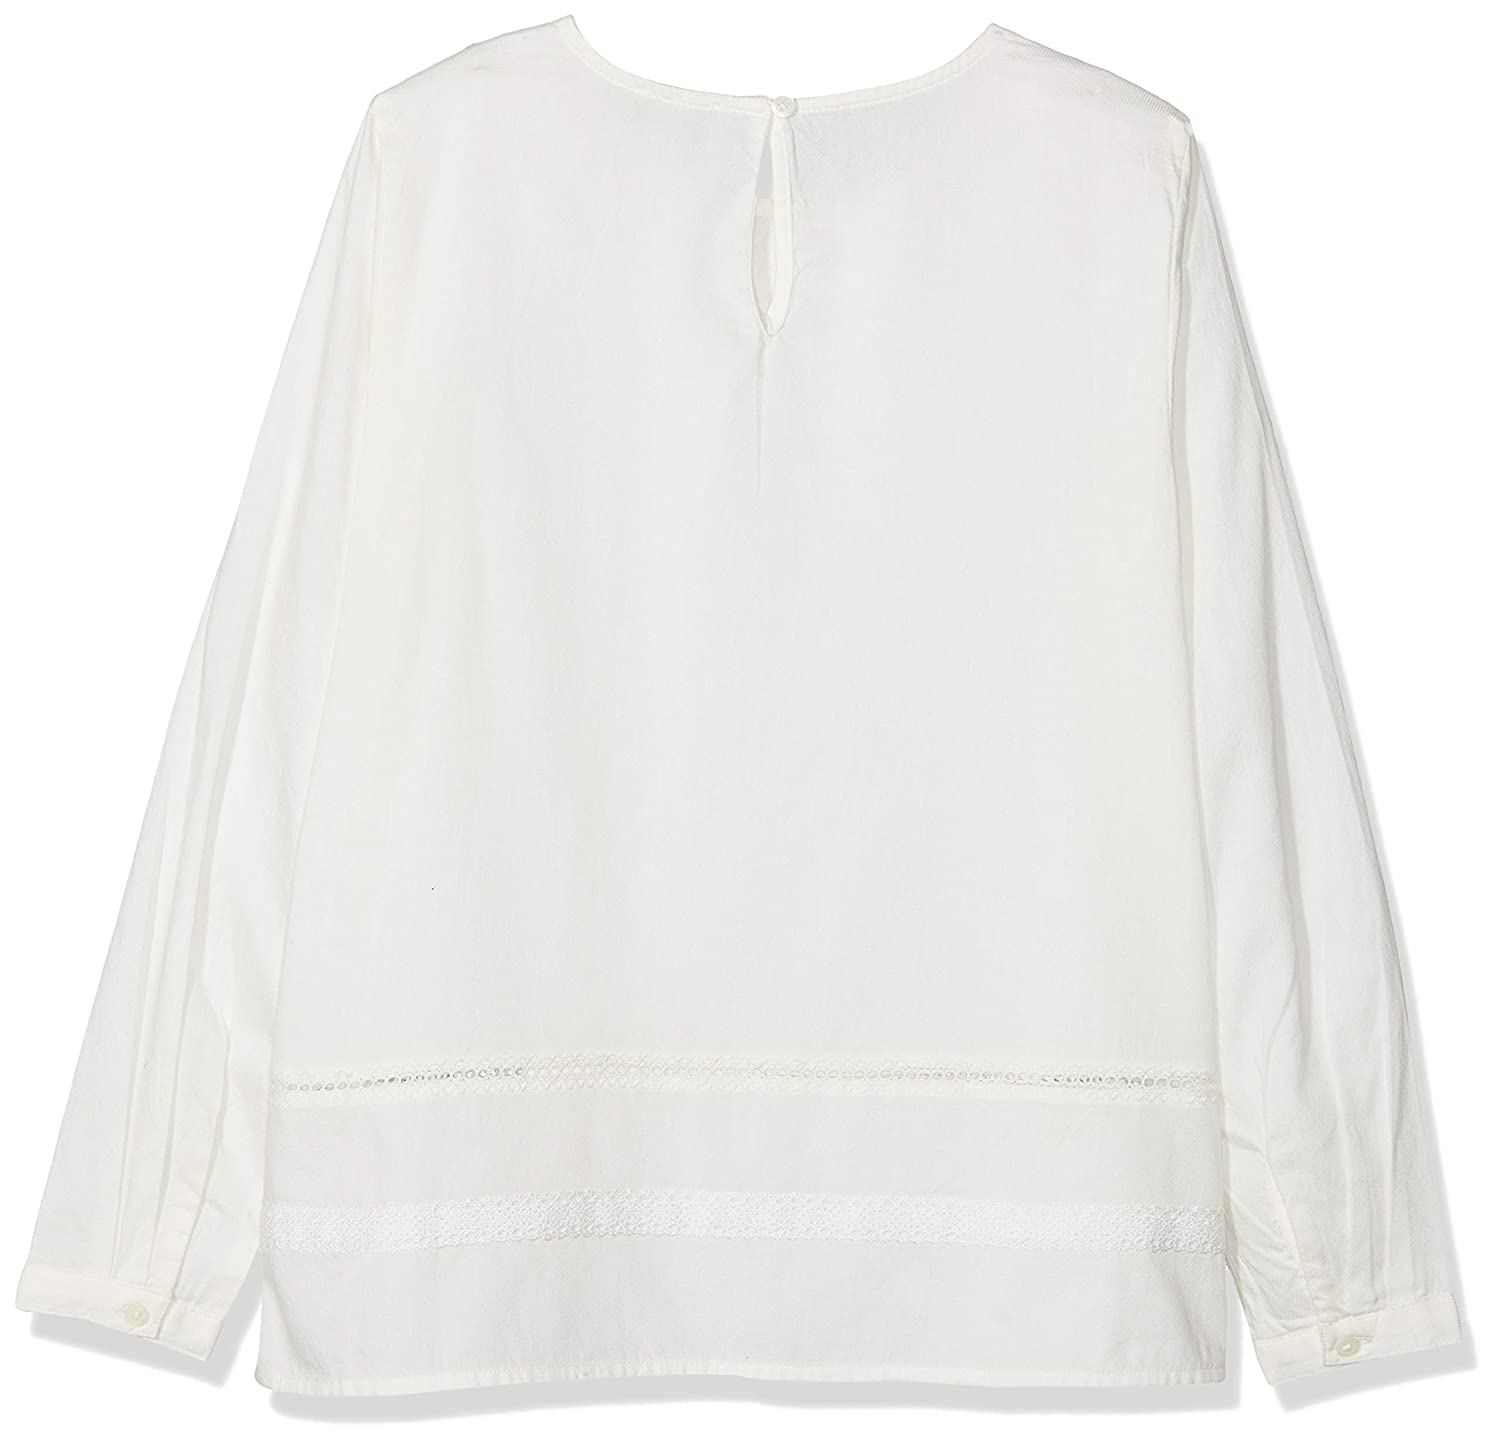 United Colors of Benetton flickblus White (Bianco 901)